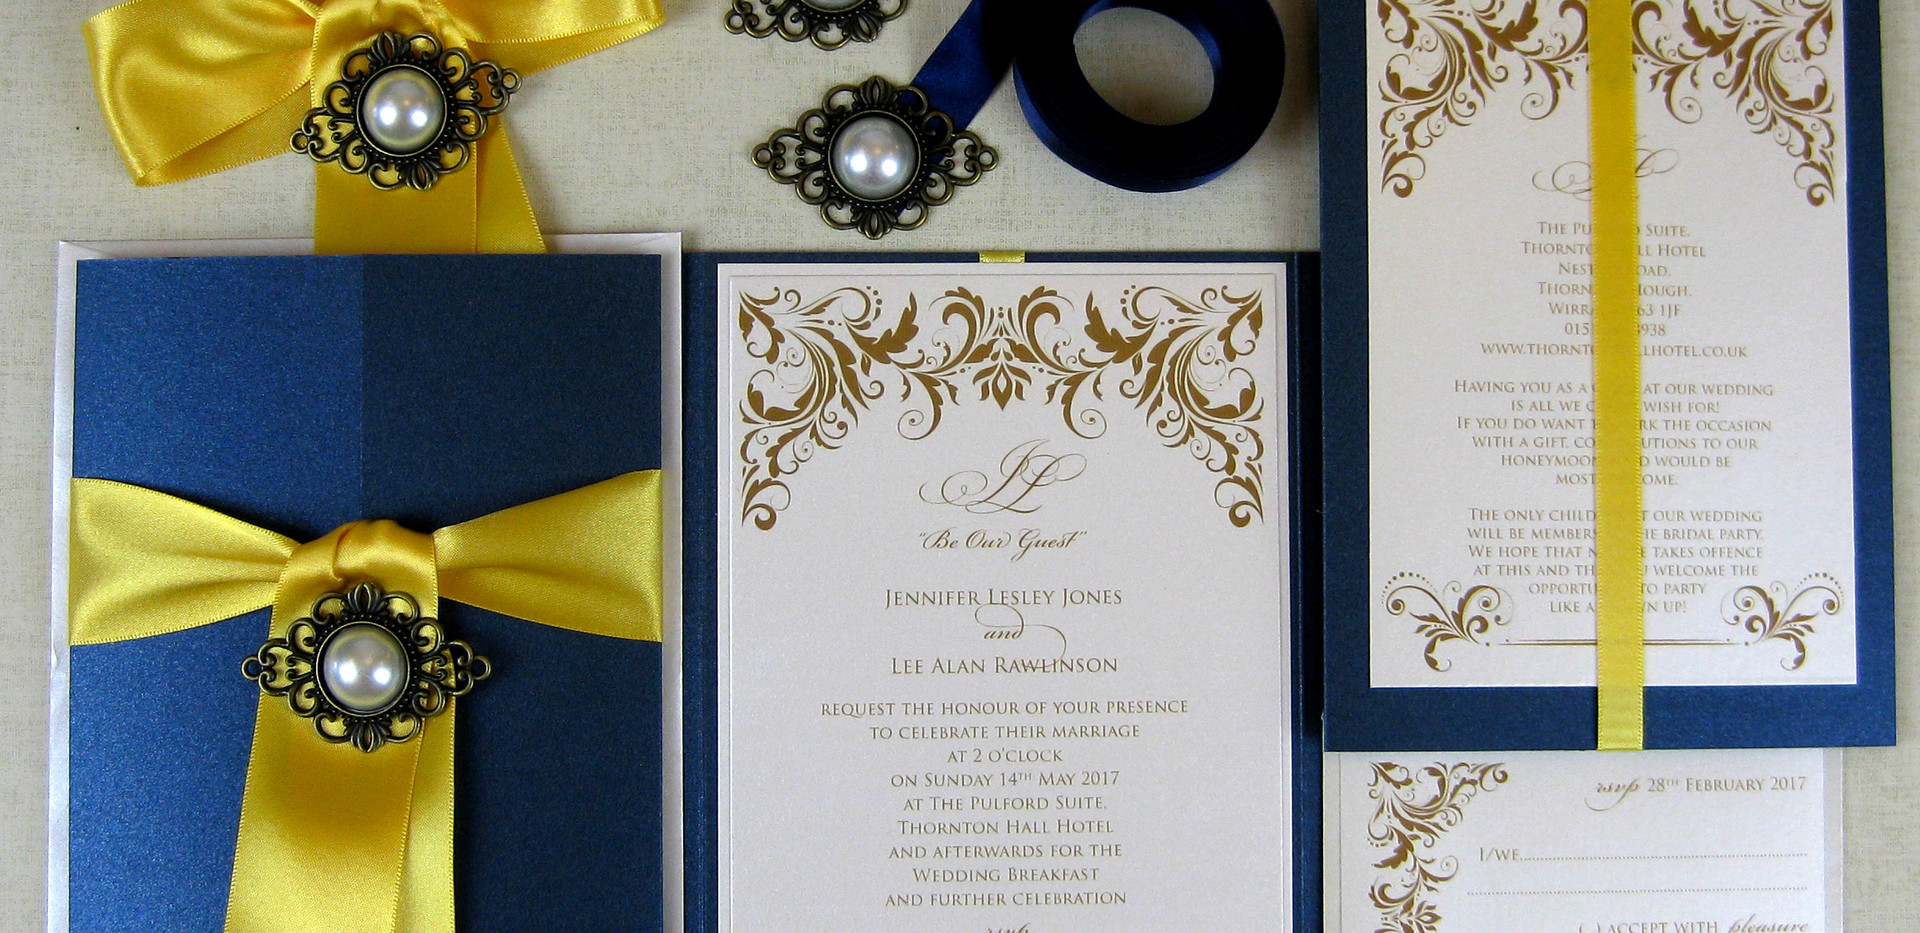 A beauty and the beast inspired invitation